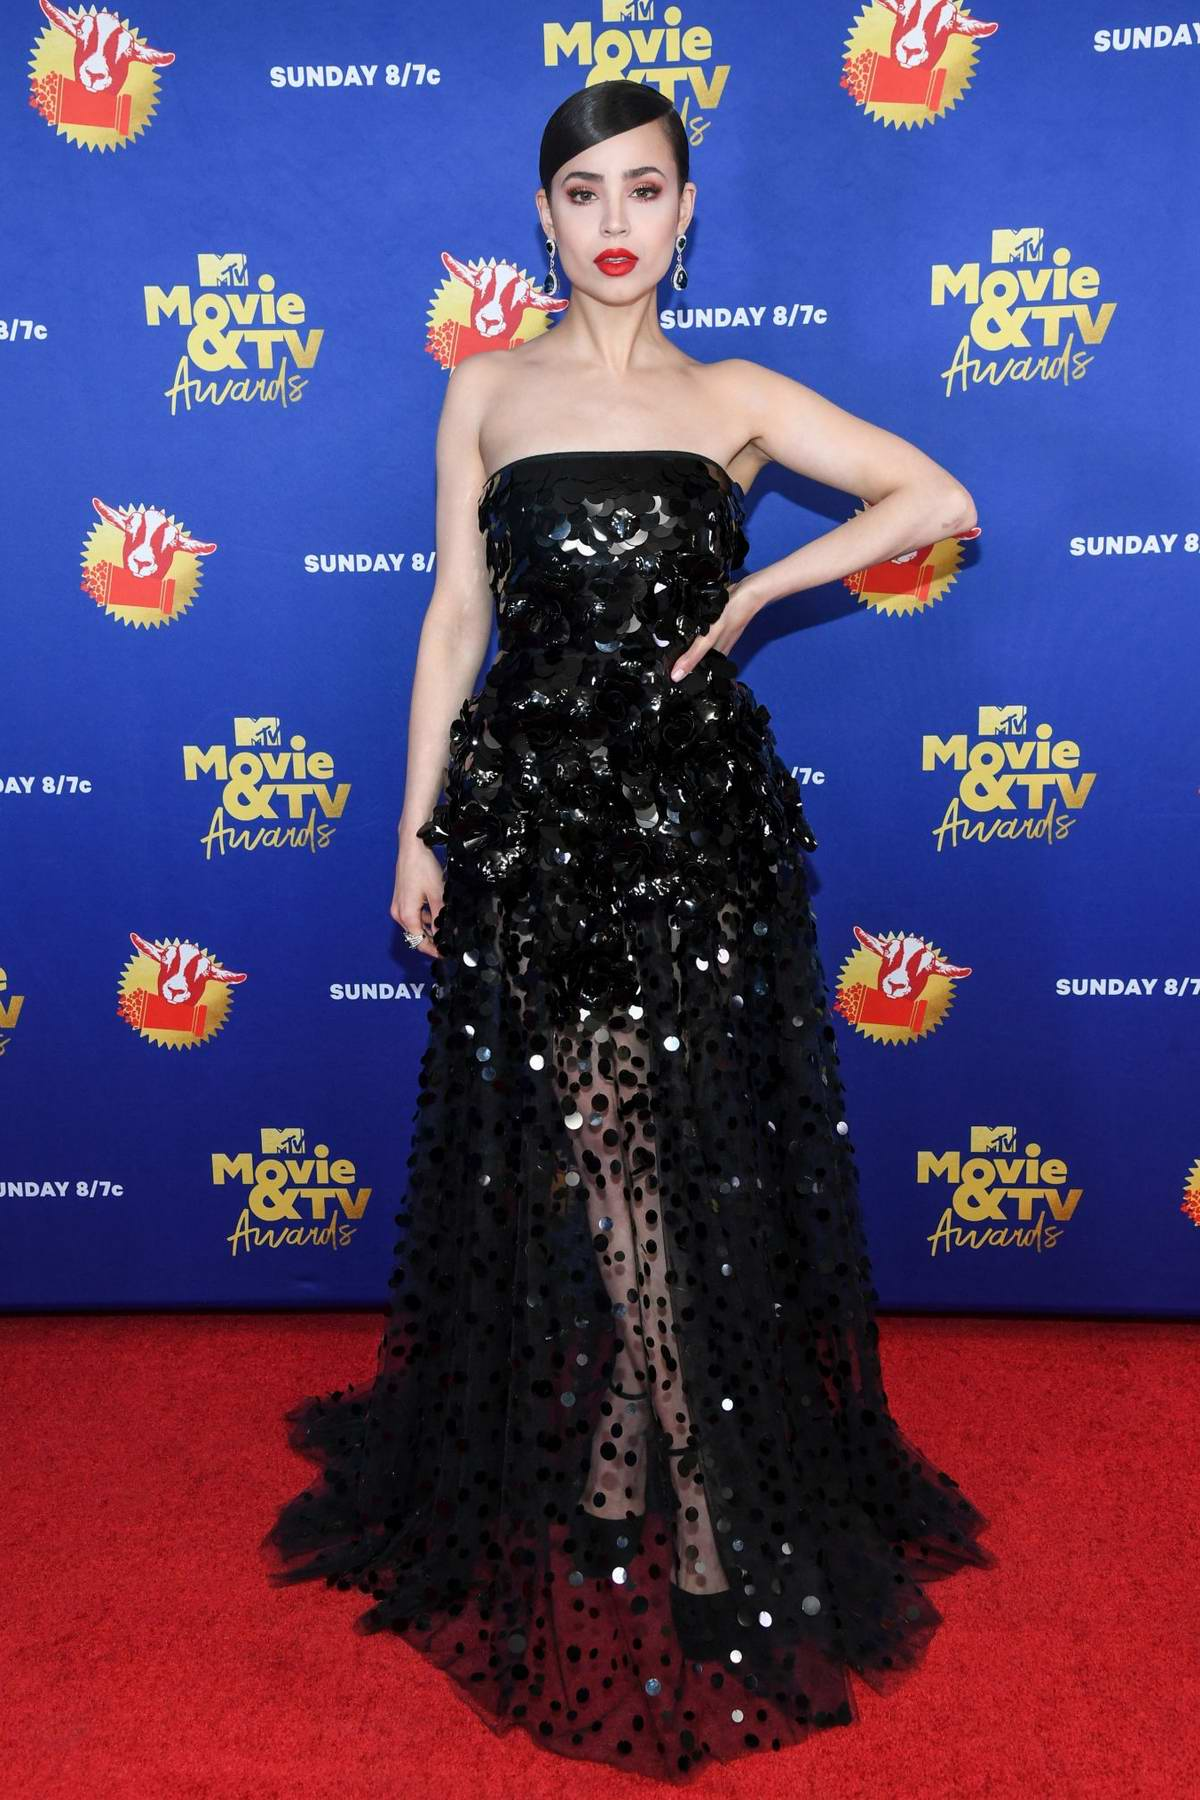 Sofia Carson attends the 2020 MTV Movie & TV Awards in Los Angeles